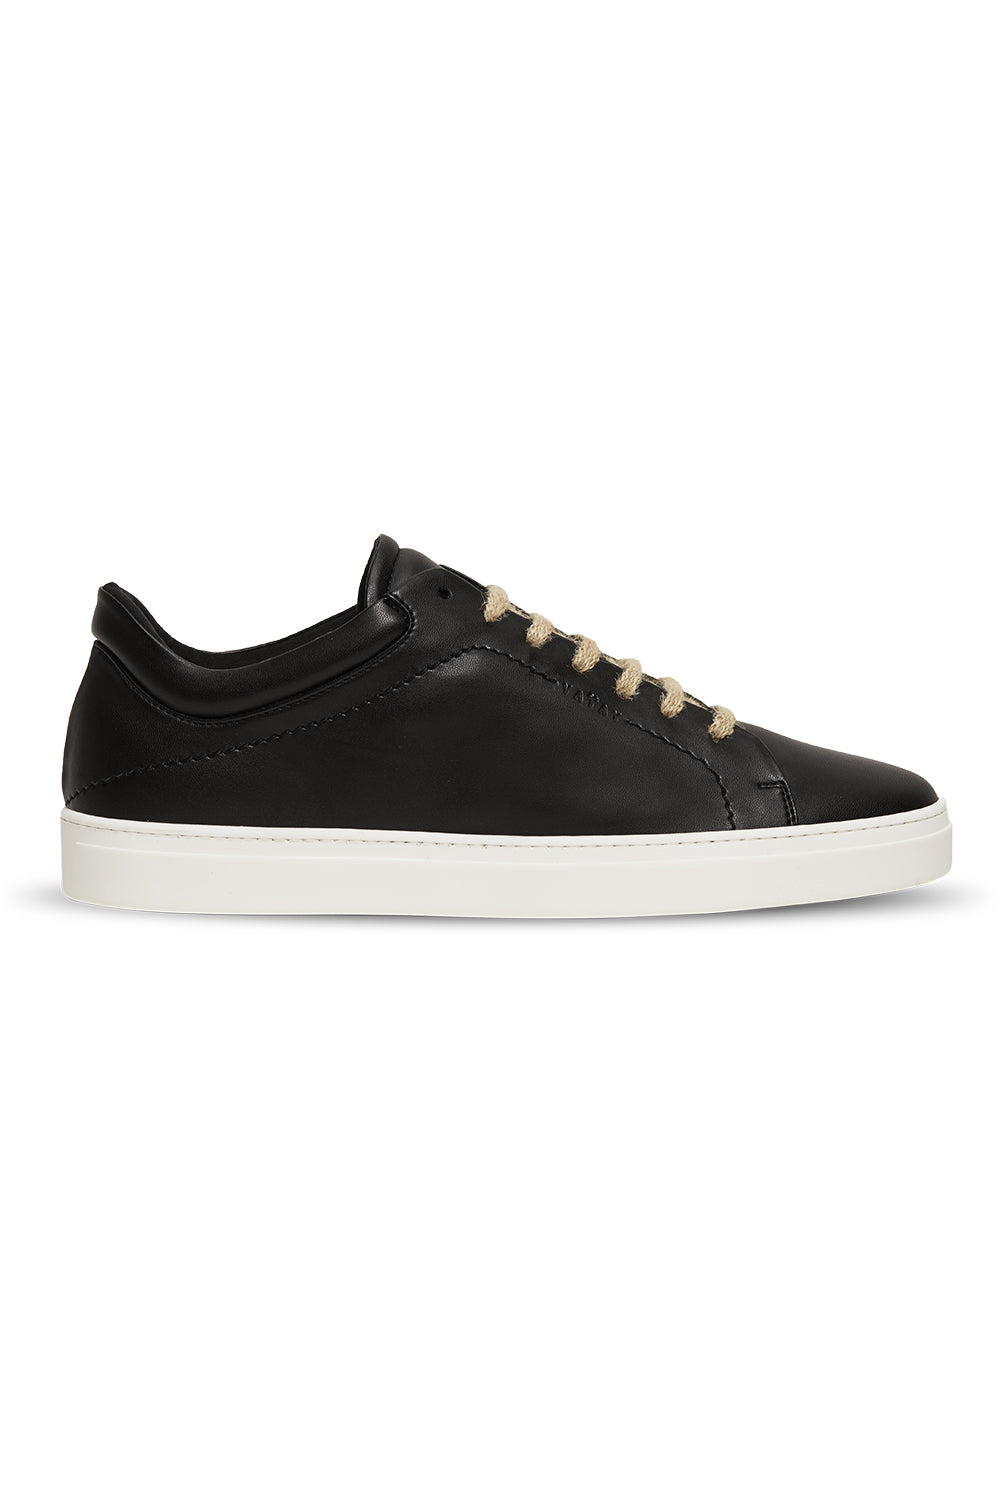 Neven Low Slate Sneakers in Black with White Sole